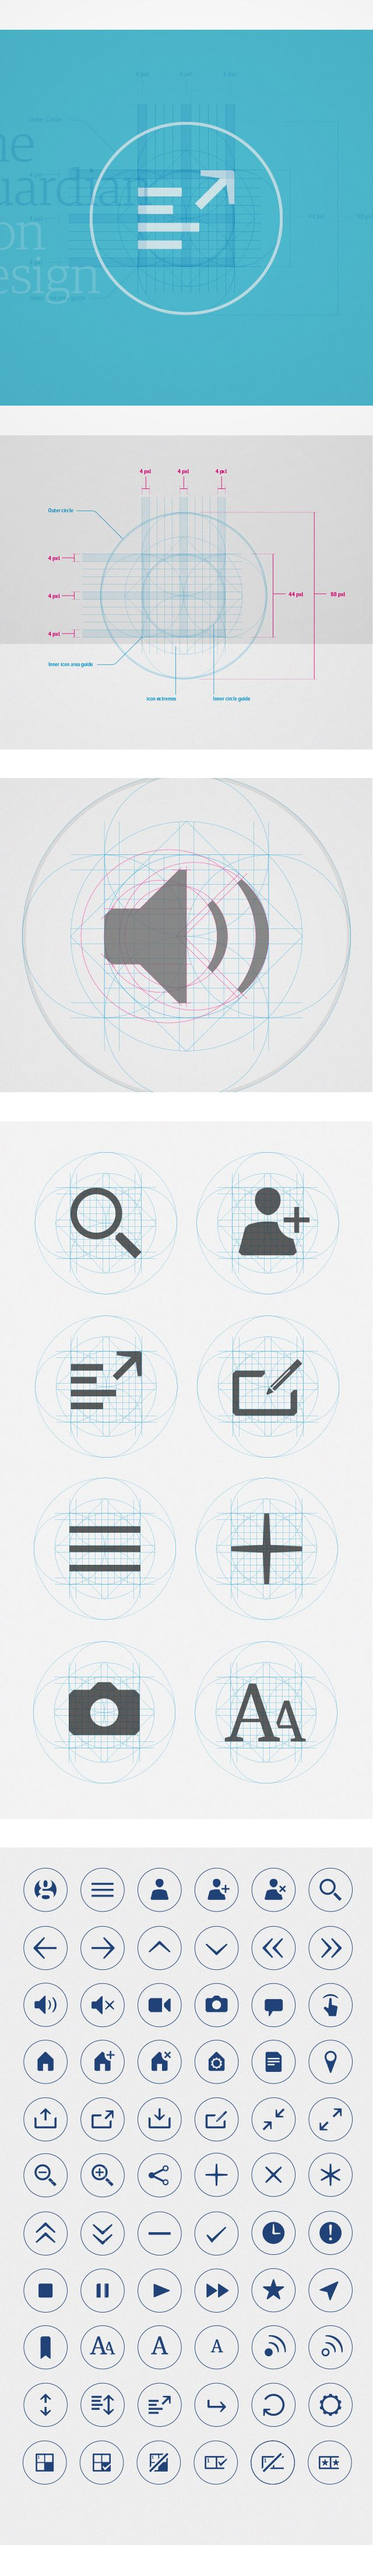 The Guardian Iconography - Icon Design  As part of a complete redesign of The Guardian's digital channels, Territory were approached to help define and craft a consolidated system of icons for use in the new app and online services.  Working in collaboration with Alex Breuer, Creative Director of The Guardian, Territory's icon guidelines are now being rolled out across the website and mobile apps.